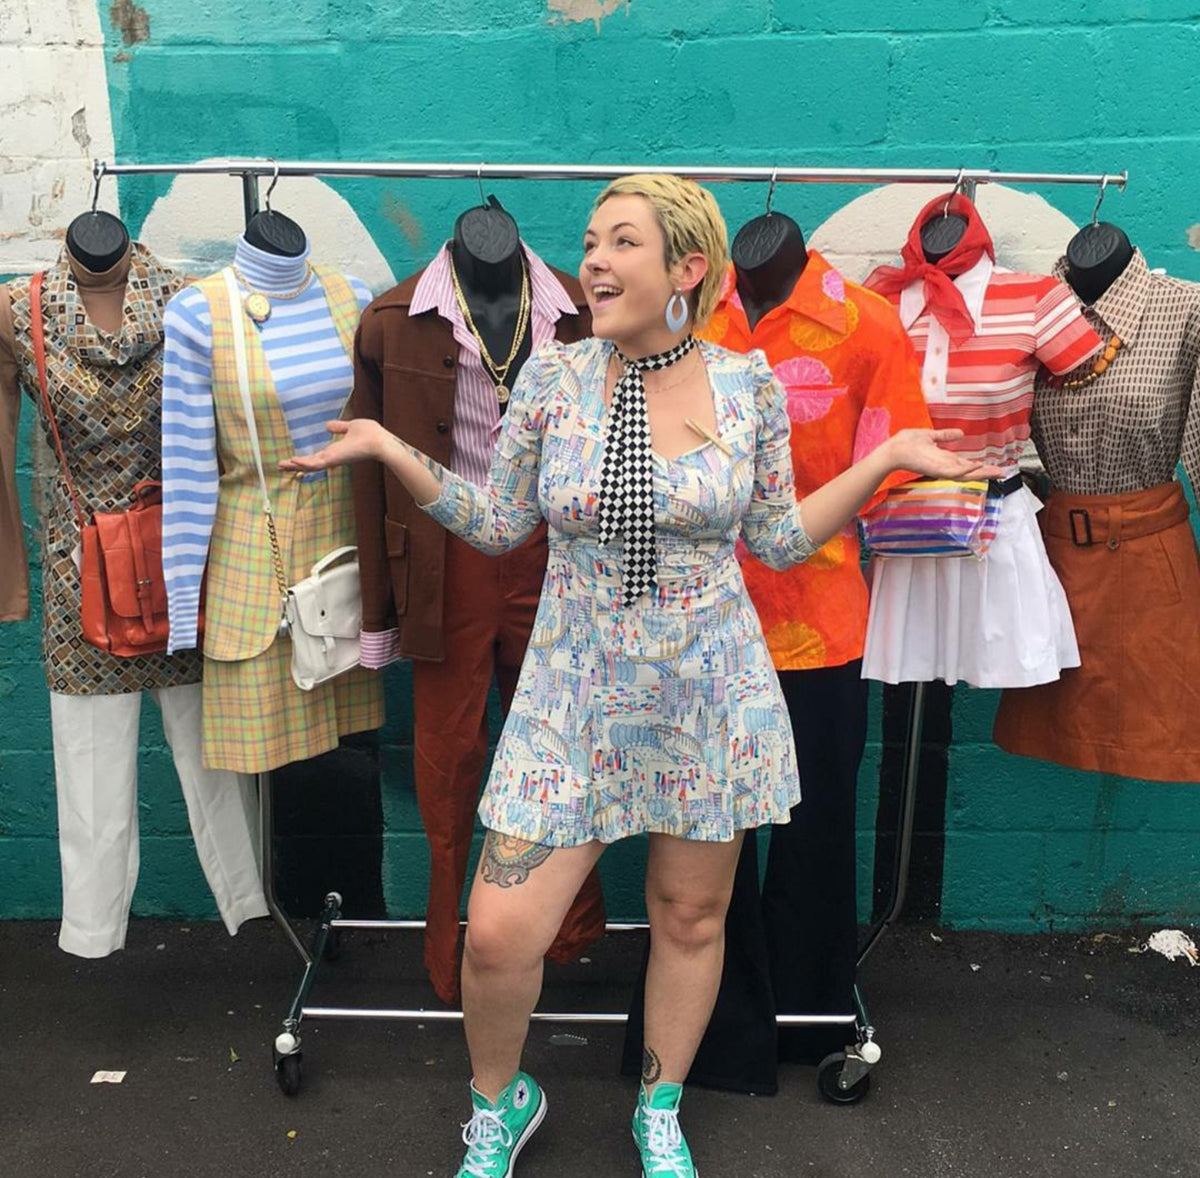 Image of lady in front of rolling rack with half forms dressed in different outfits